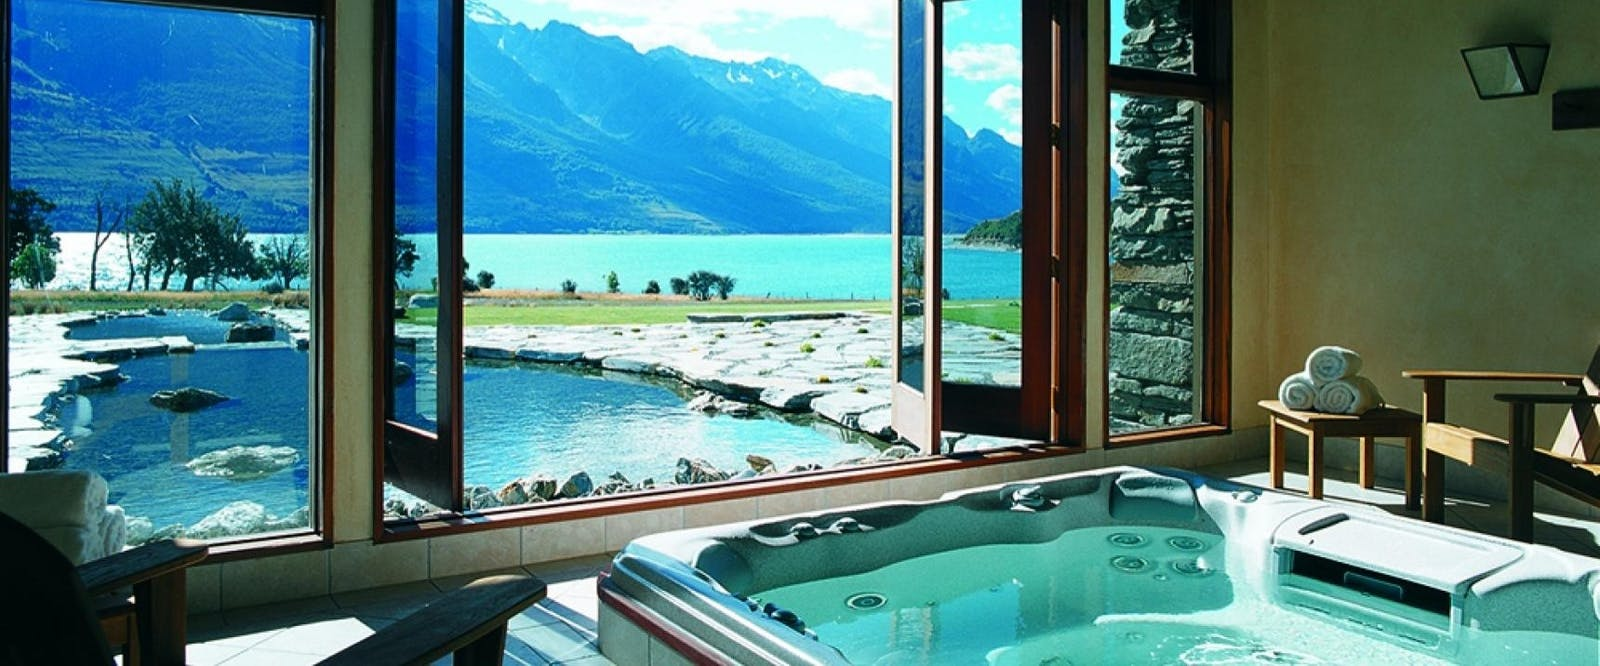 Spa at Blanket Bay, Glenorchy